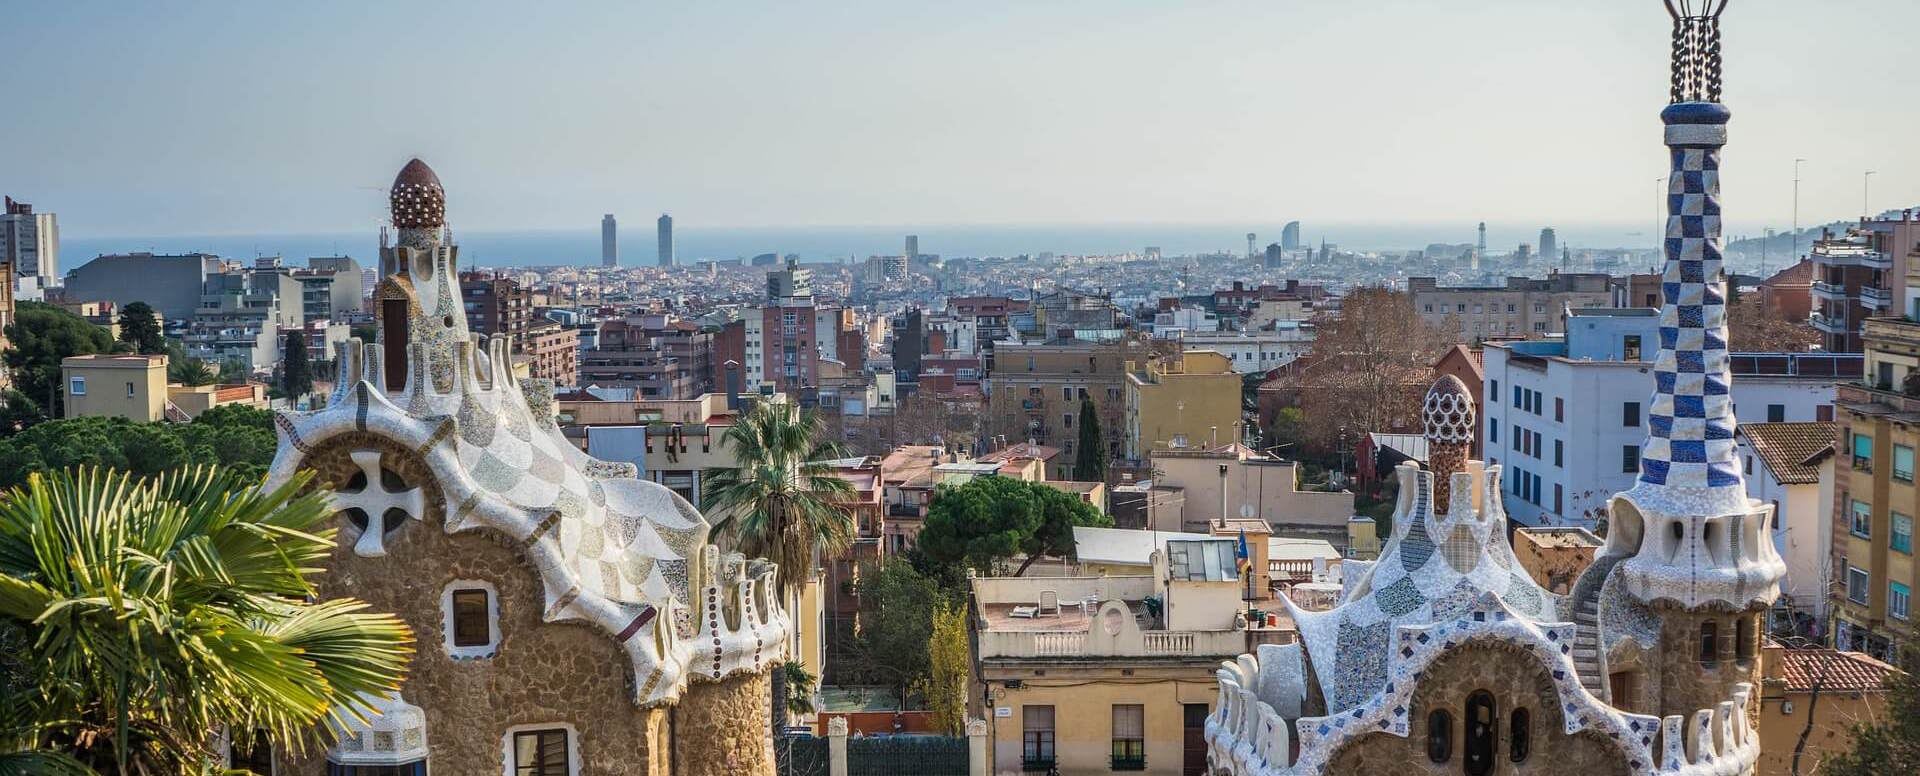 10 things to do in Spain - Spain